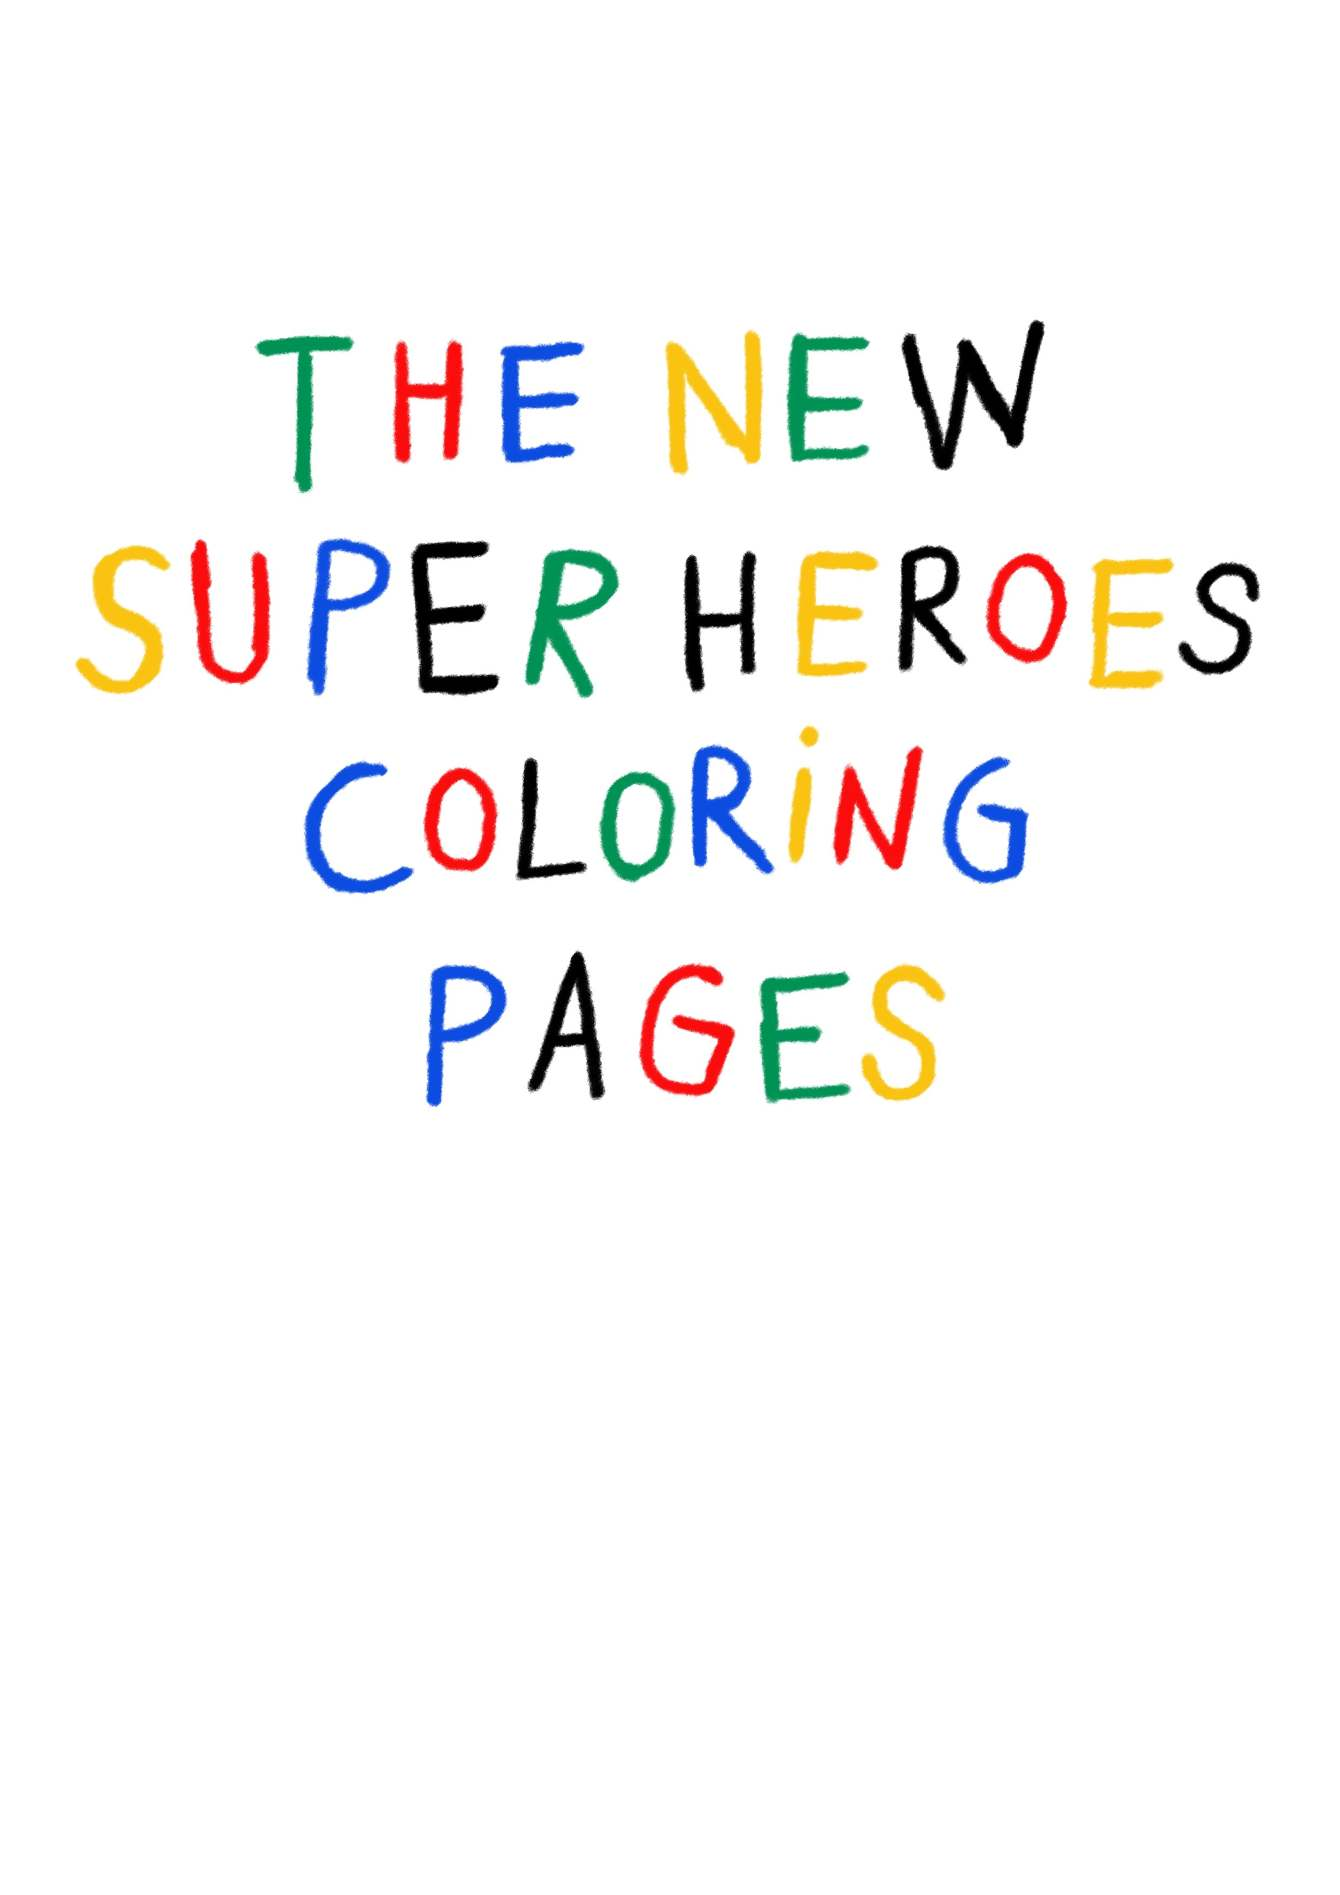 Superhero Coloring Pages - Best Coloring Pages For Kids   1895x1340